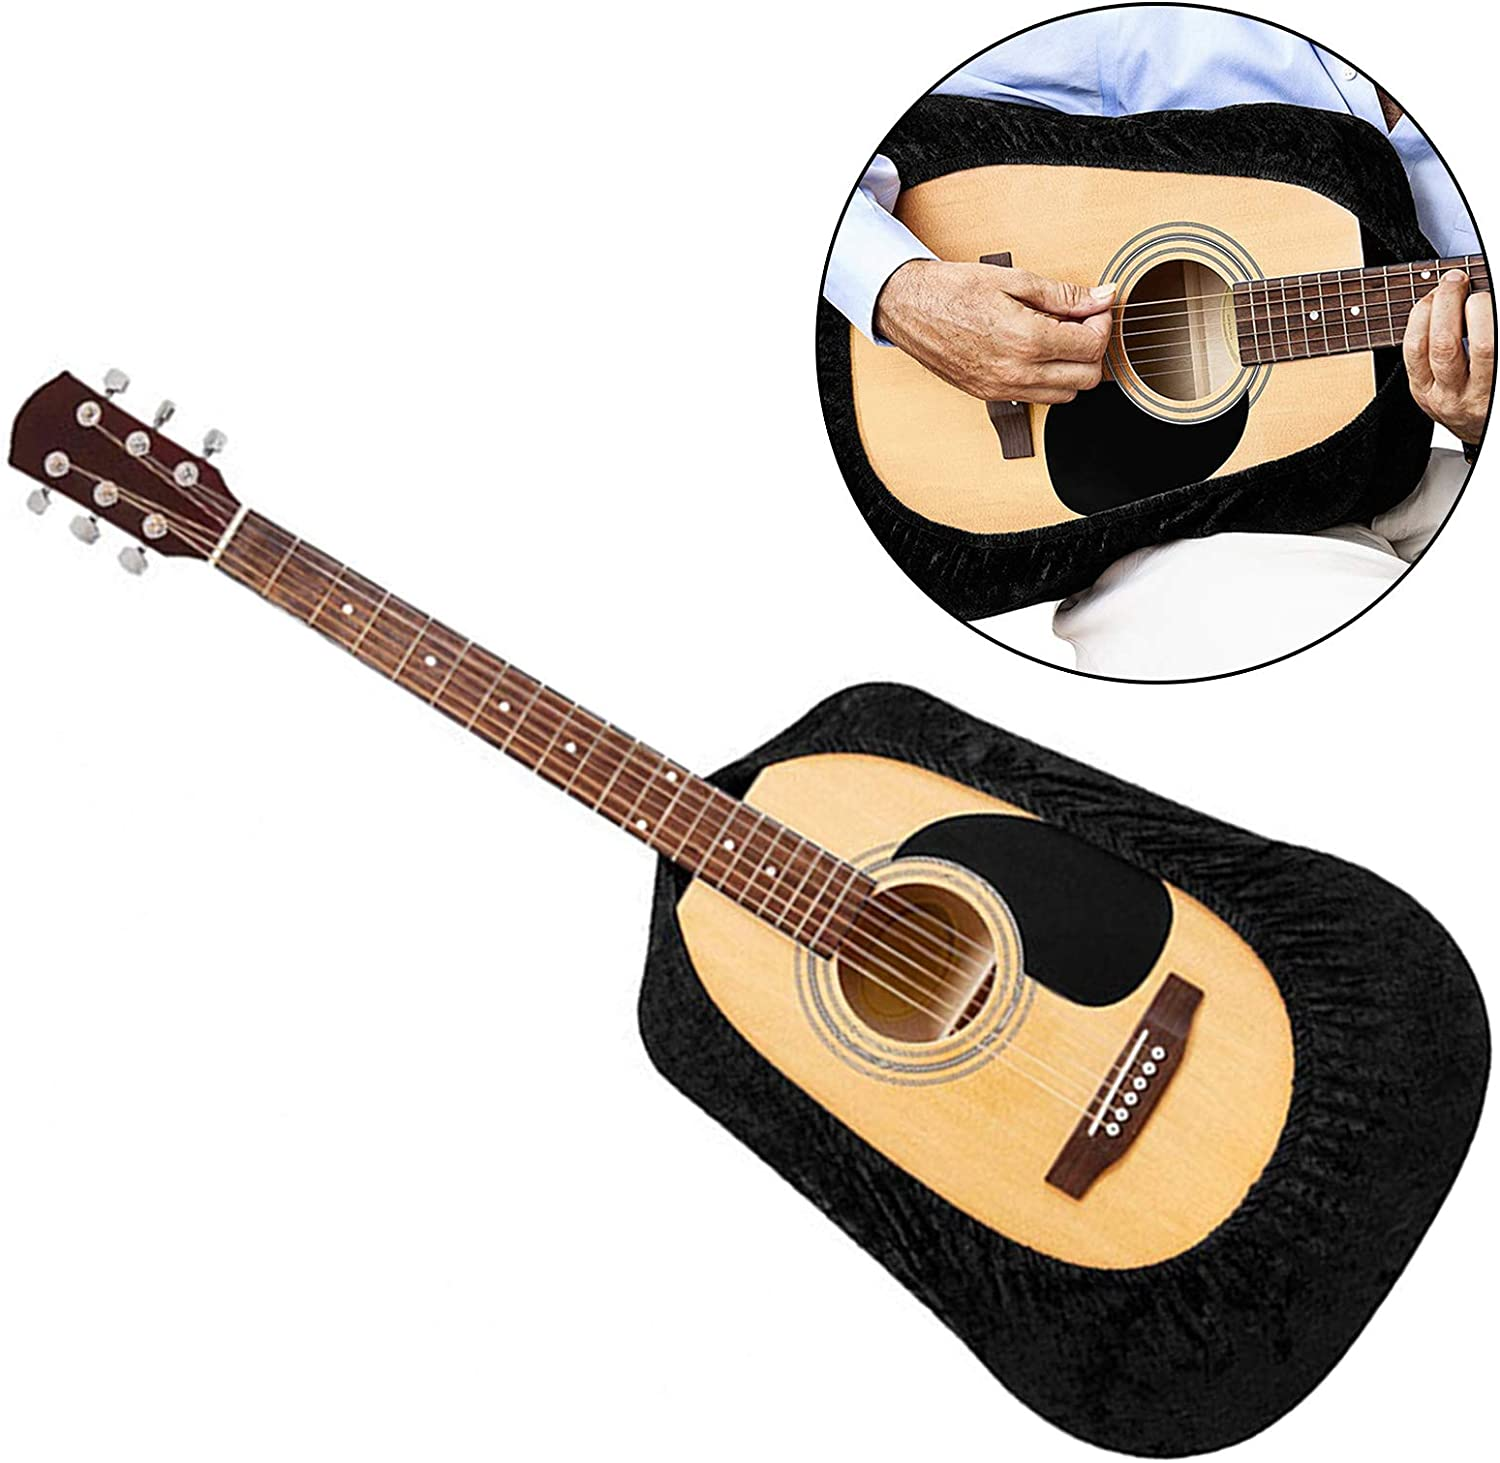 OhhGo Guitar Cover Gig Bag Easy-to-use Sl Protector Protective Don't miss the campaign